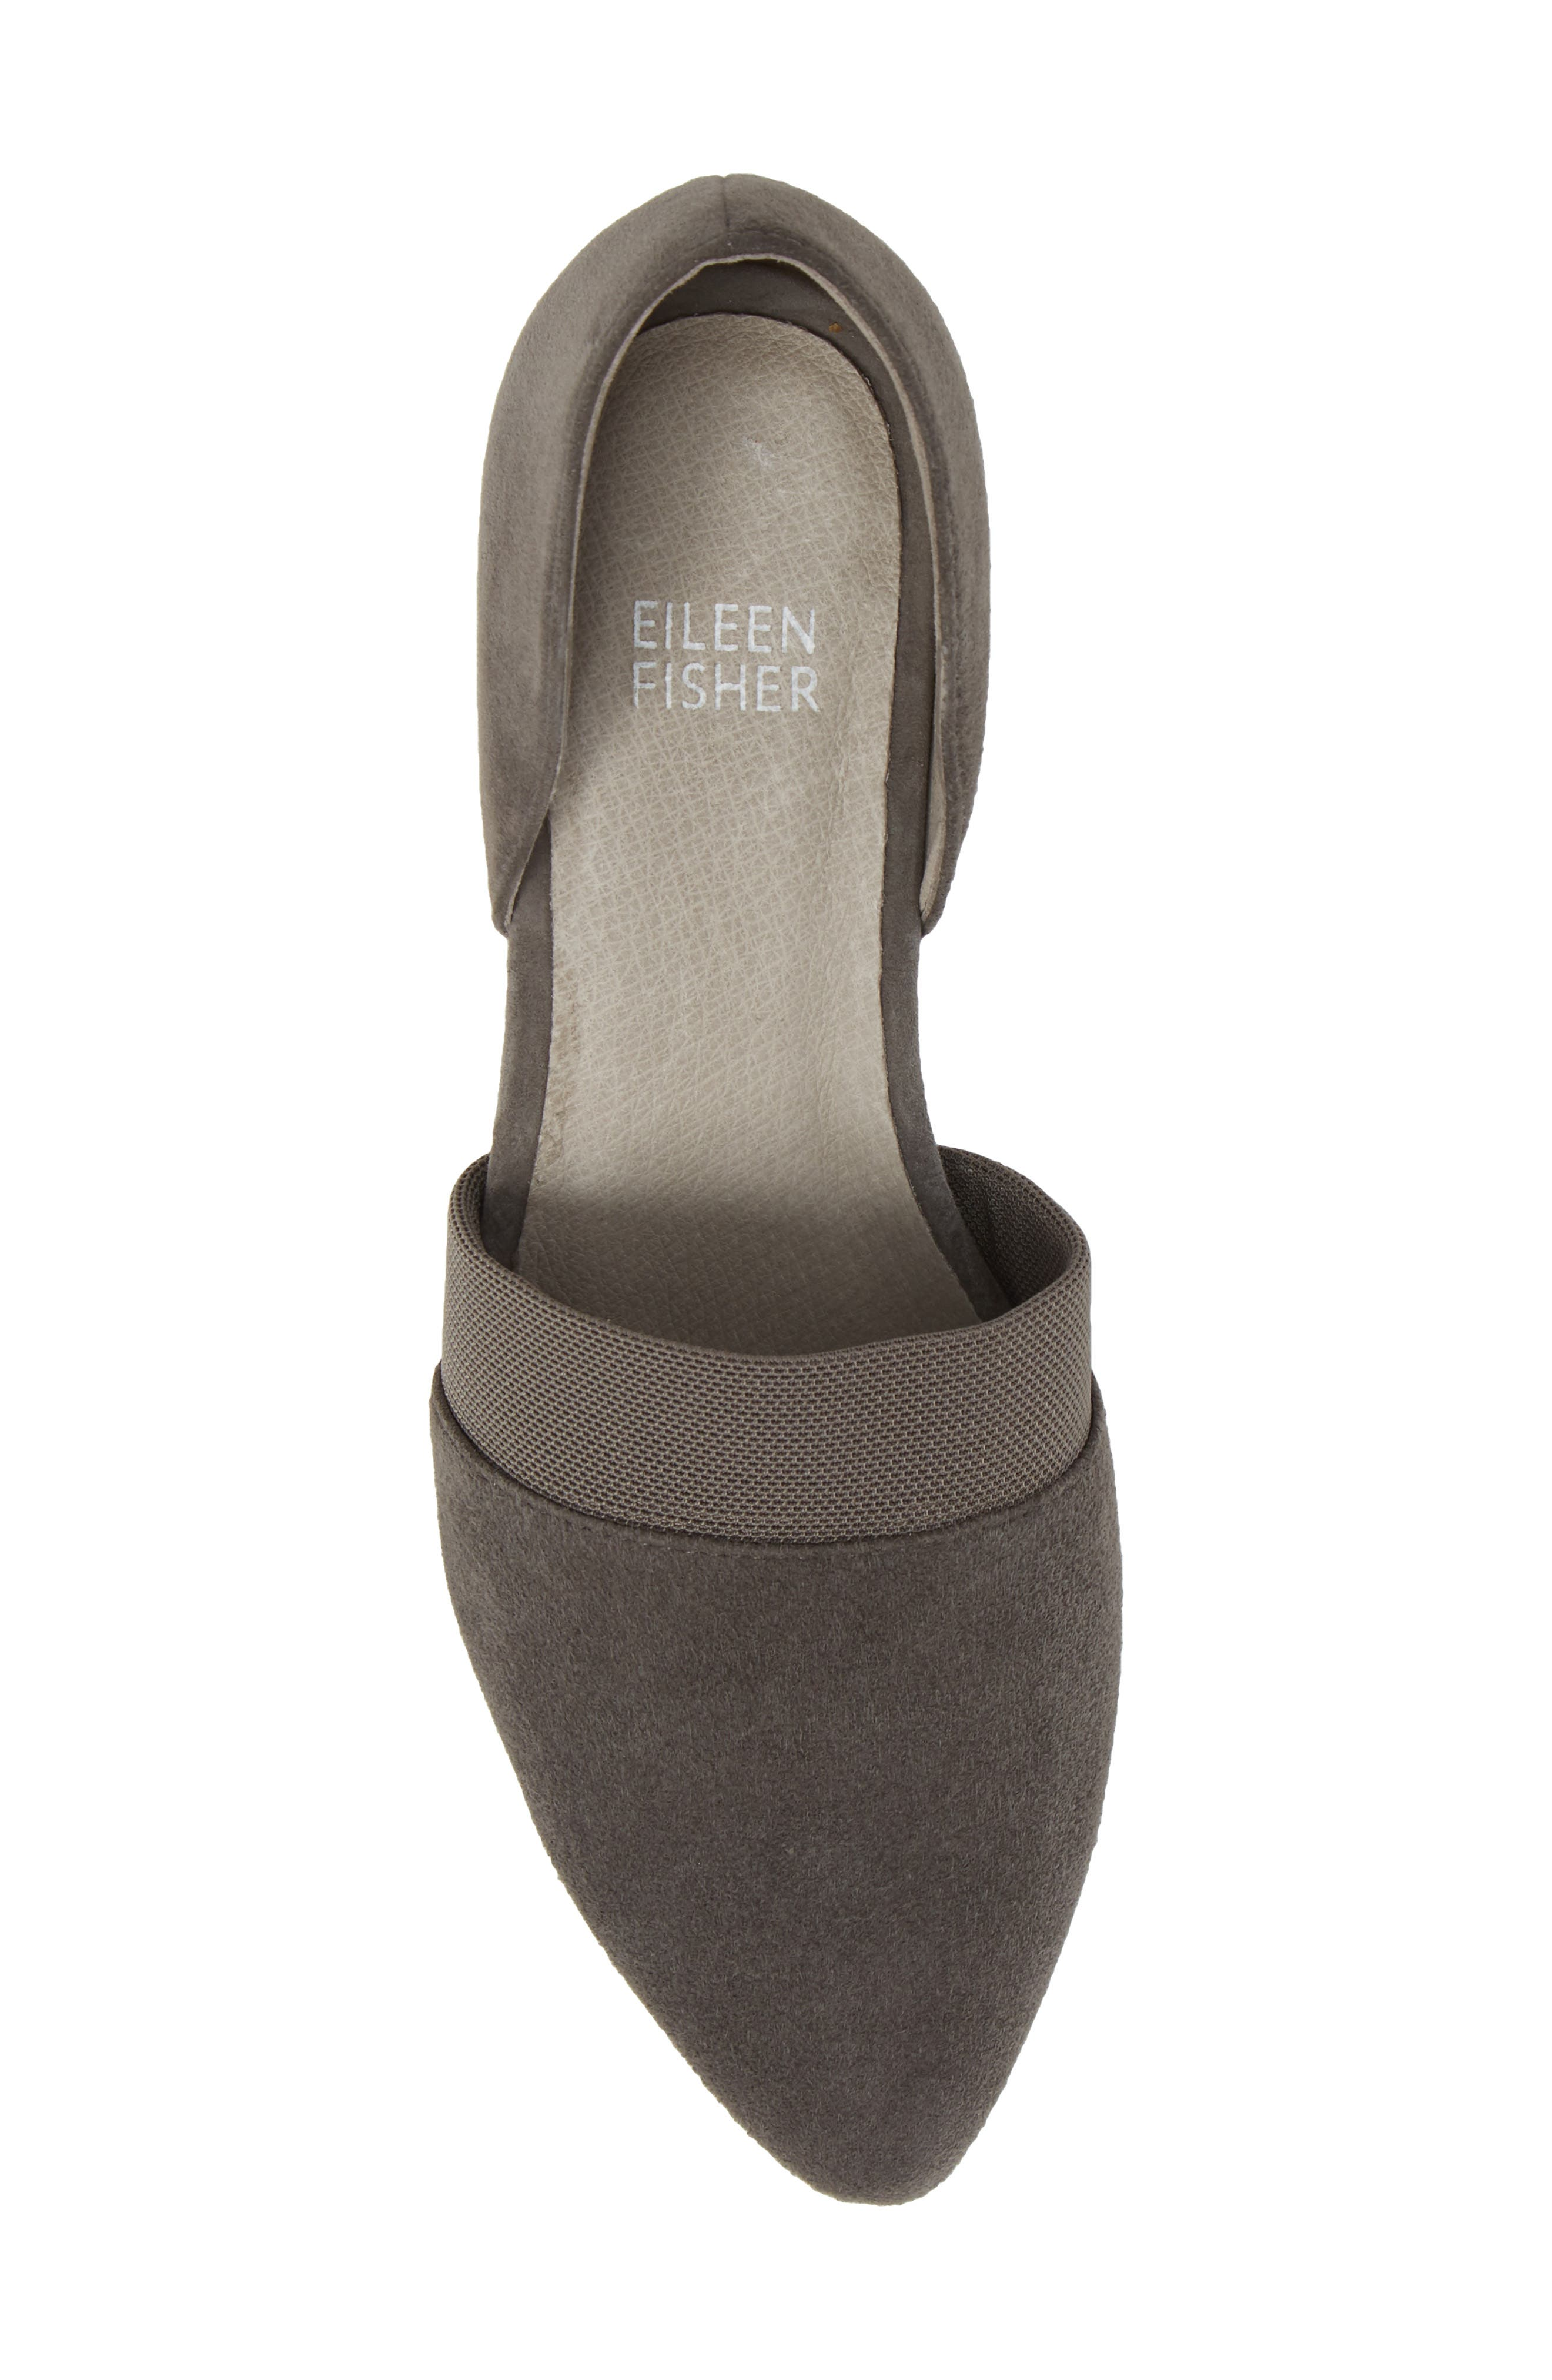 Hilly d'Orsay Pump,                             Alternate thumbnail 5, color,                             GRAPHITE SUEDE